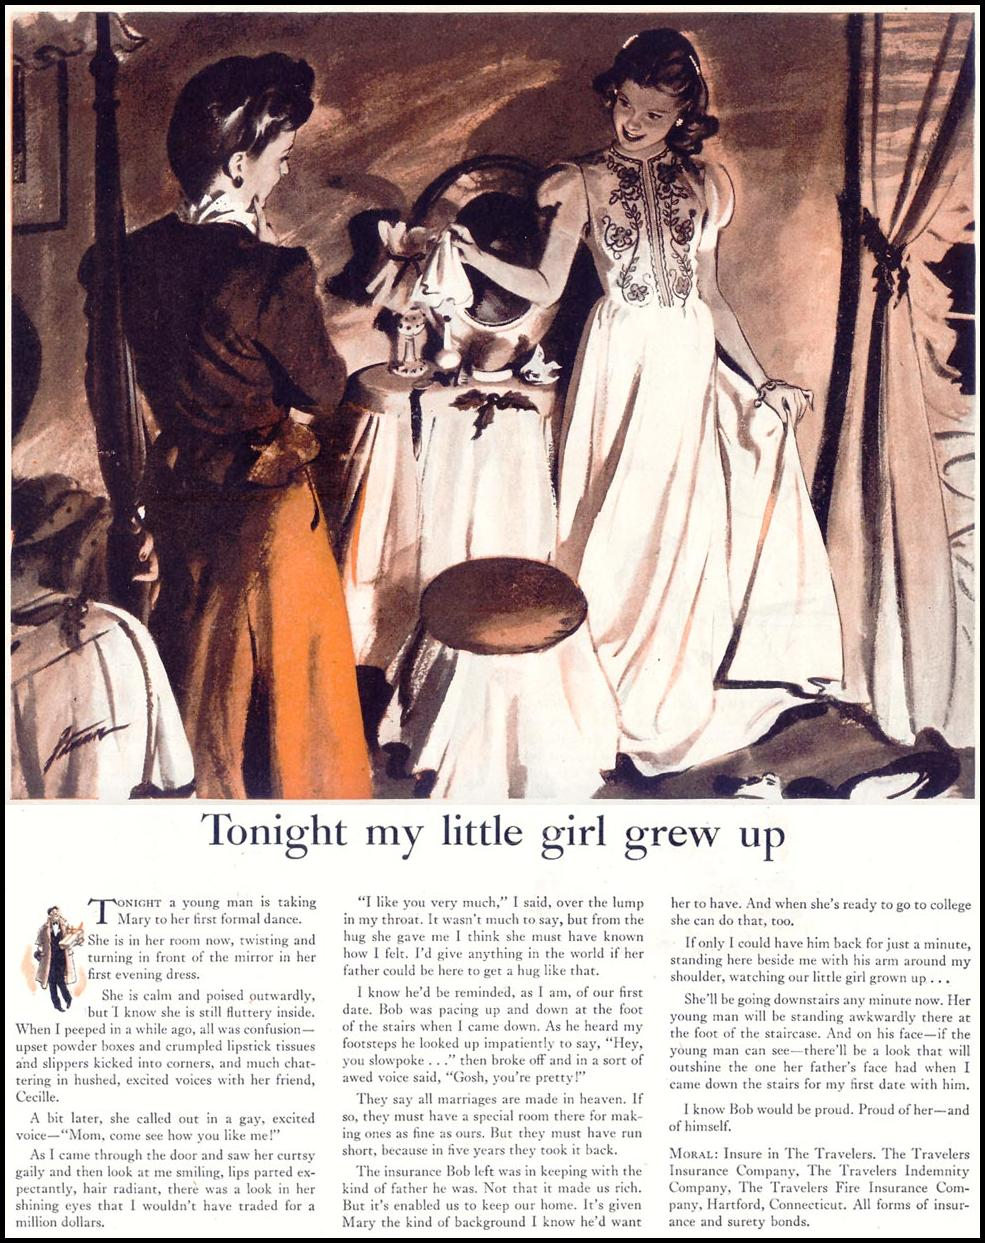 LIFE INSURANCE SATURDAY EVENING POST 05/19/1945